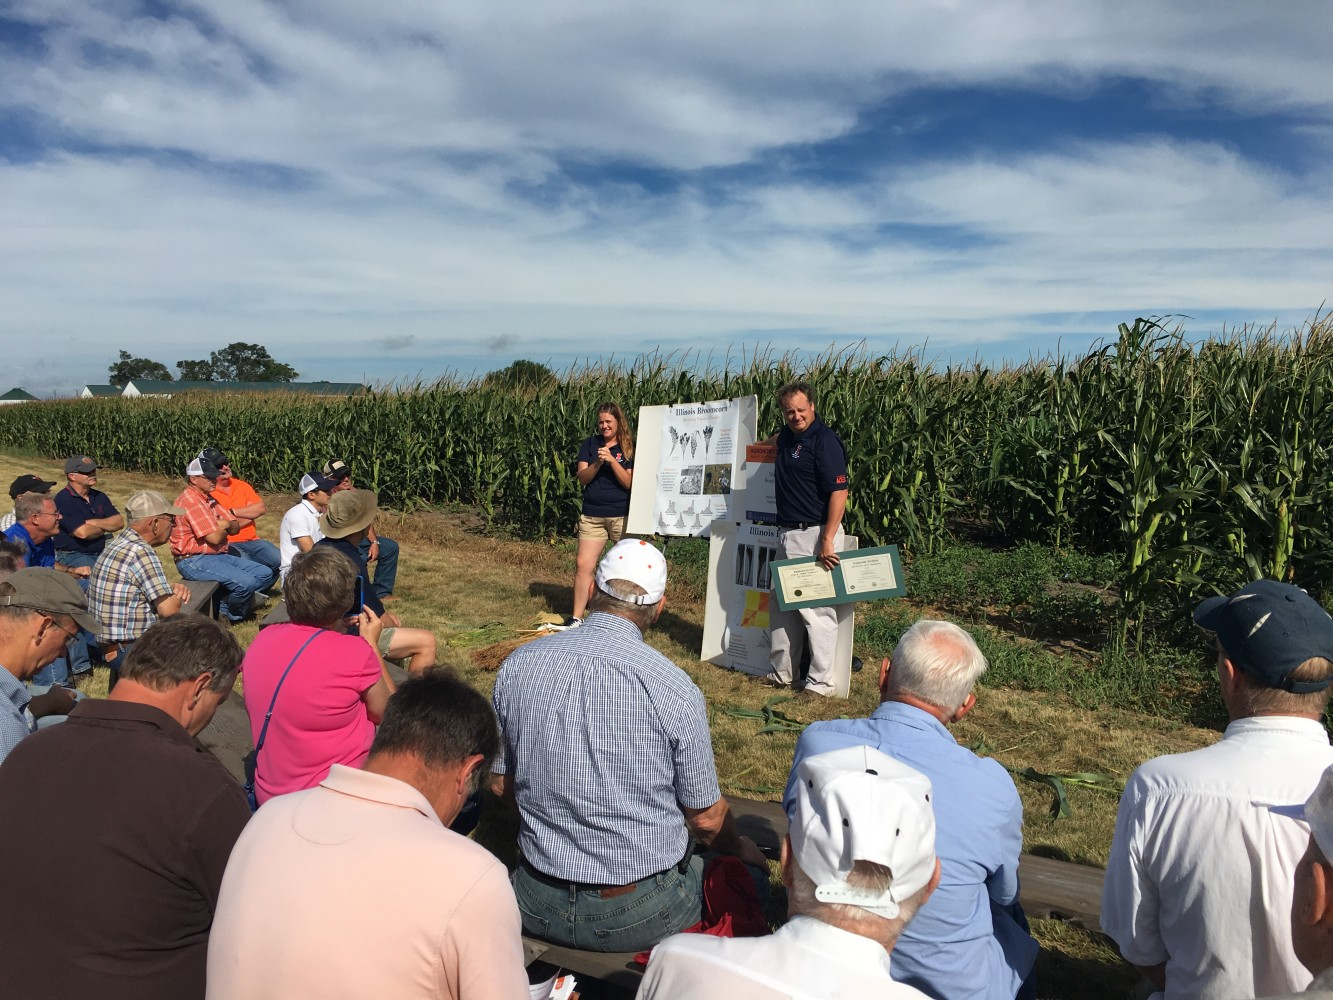 Researchers presenting at past Agronomy Day event